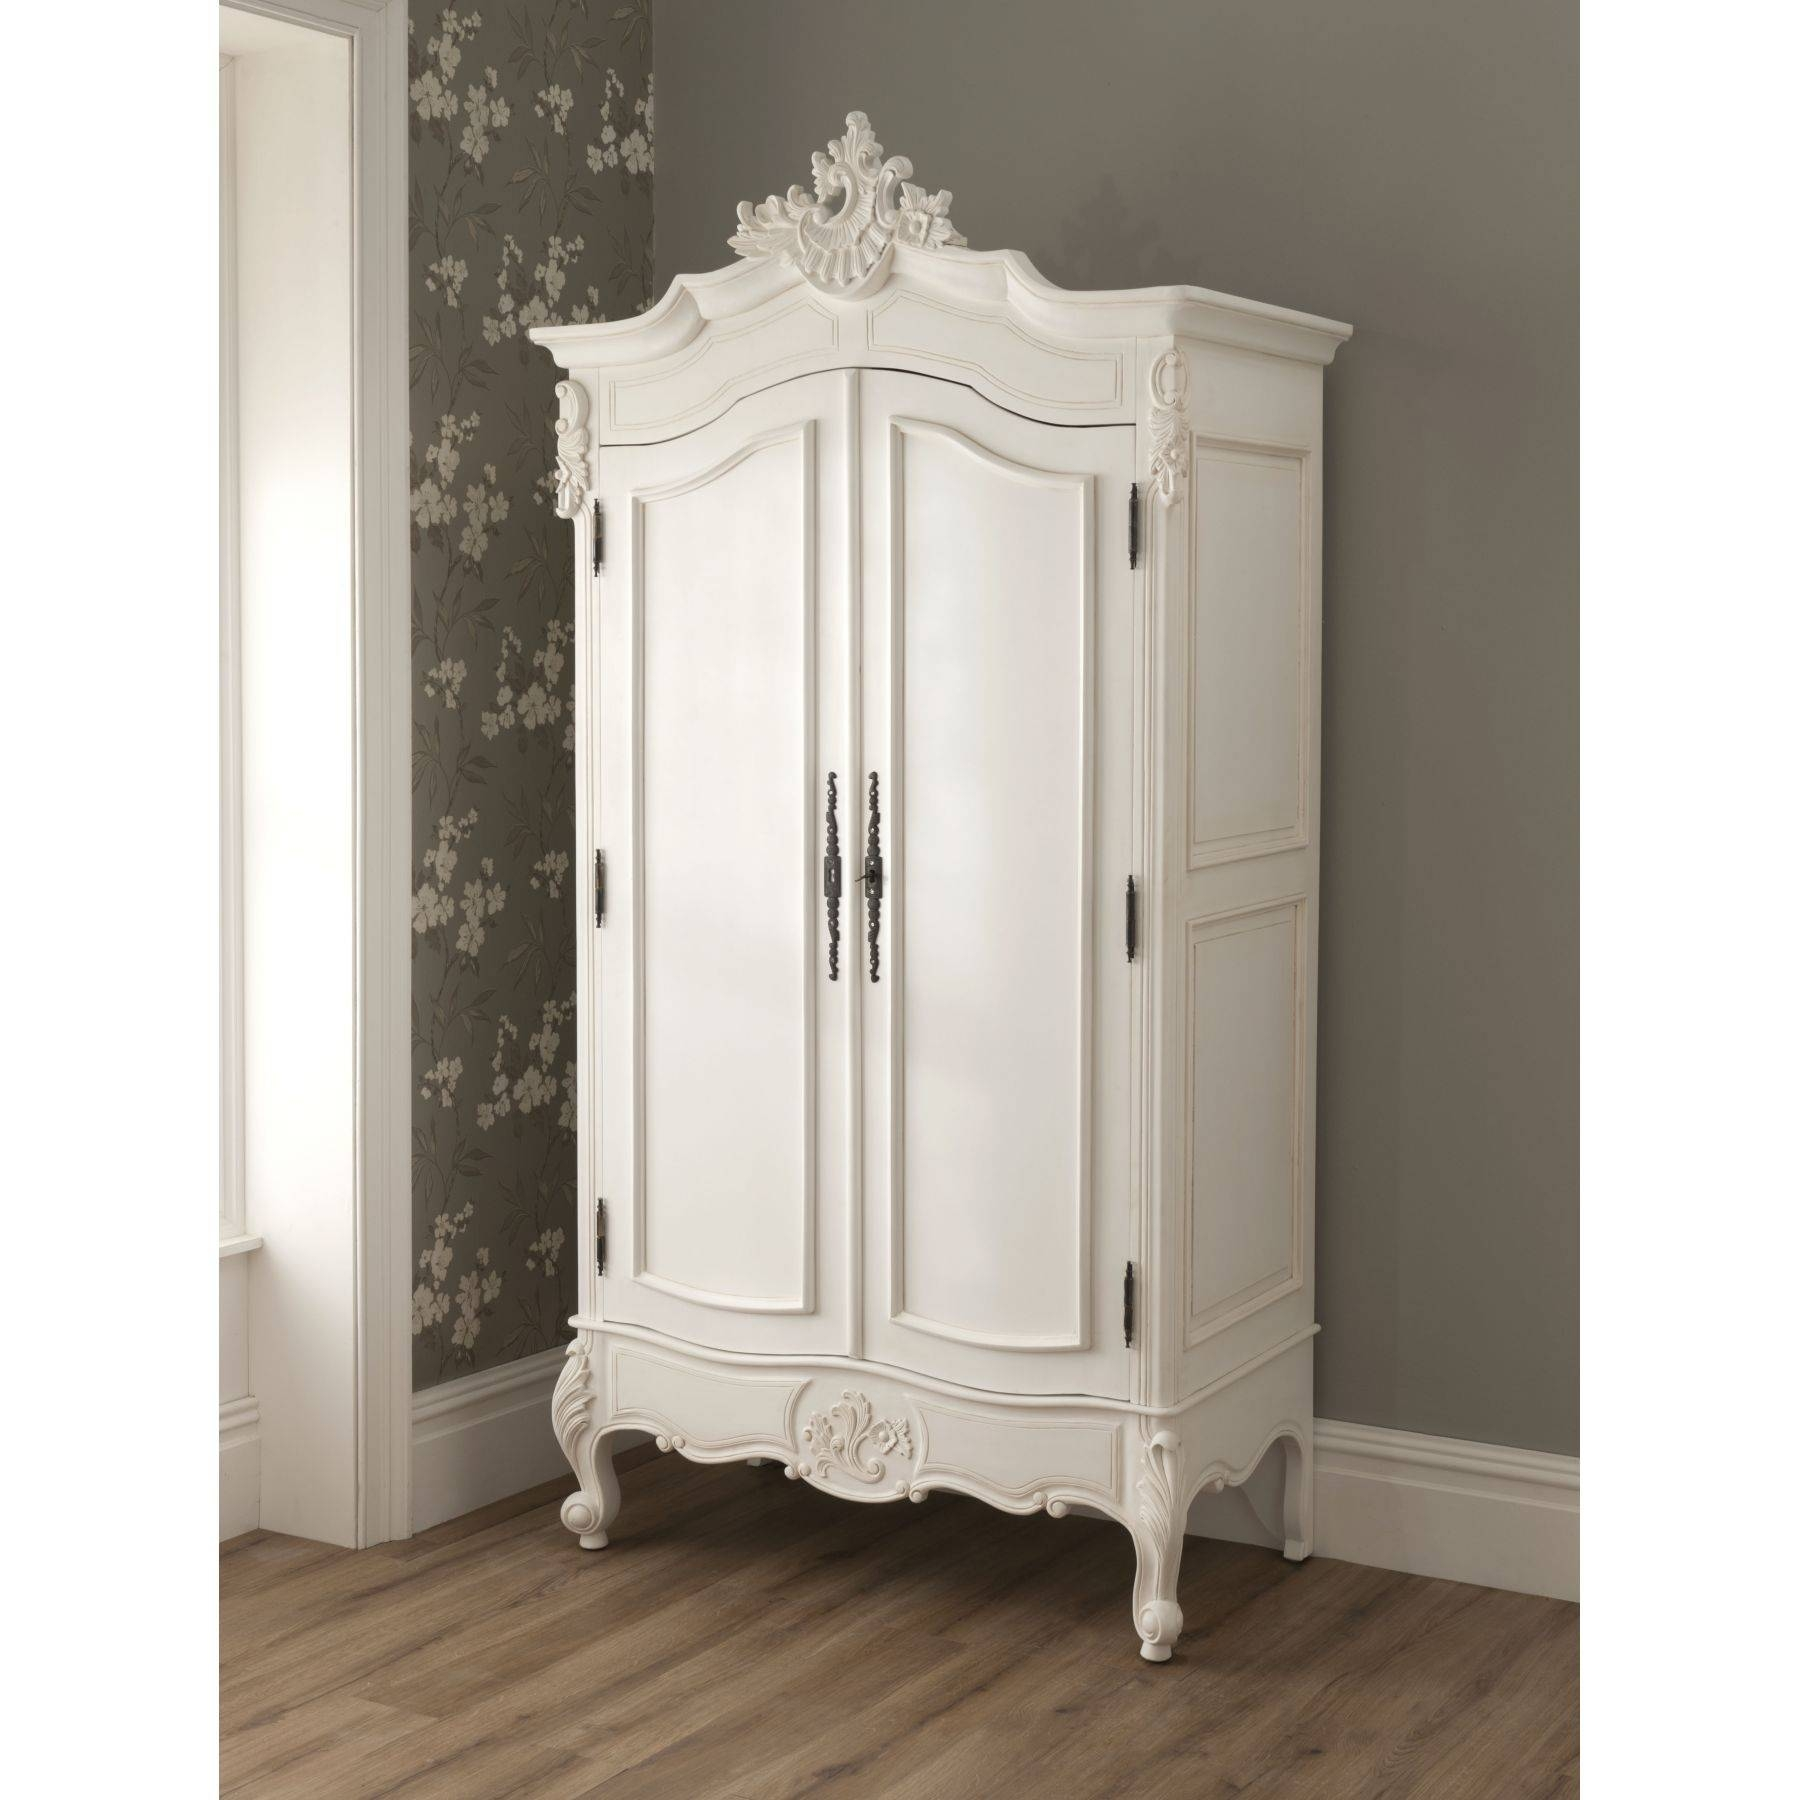 Furniture: Fancy Wardrobe Armoire For Wardrobe Organizer Idea in French Wardrobes For Sale (Image 9 of 15)